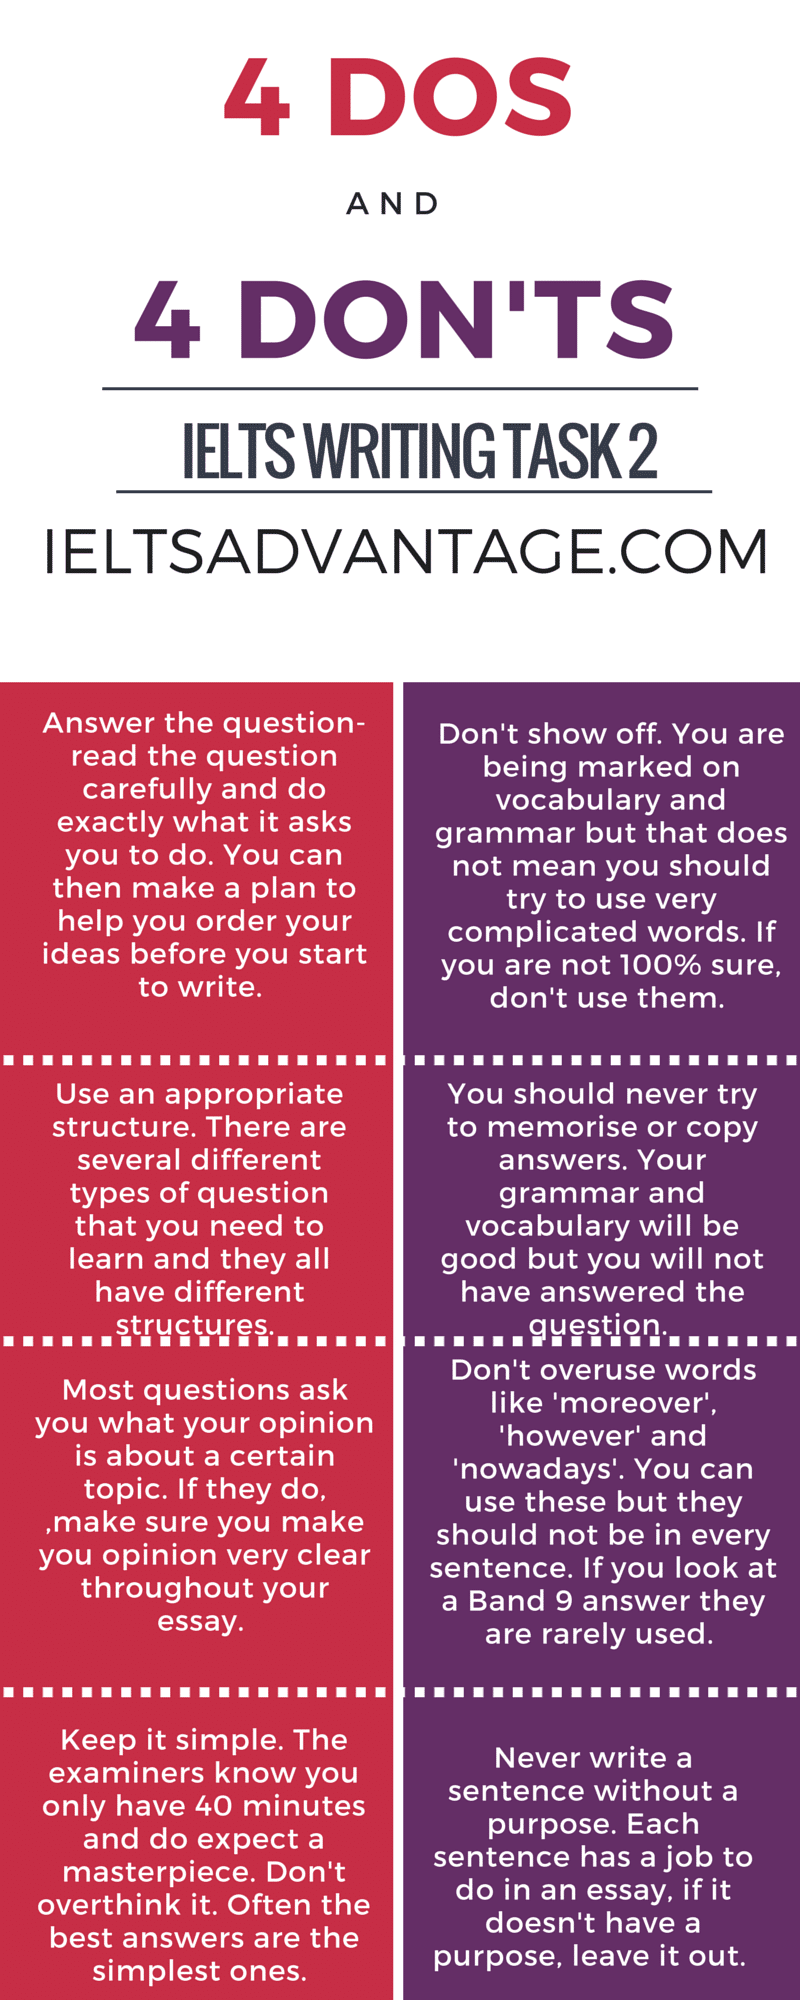 Tips for writing an essay test